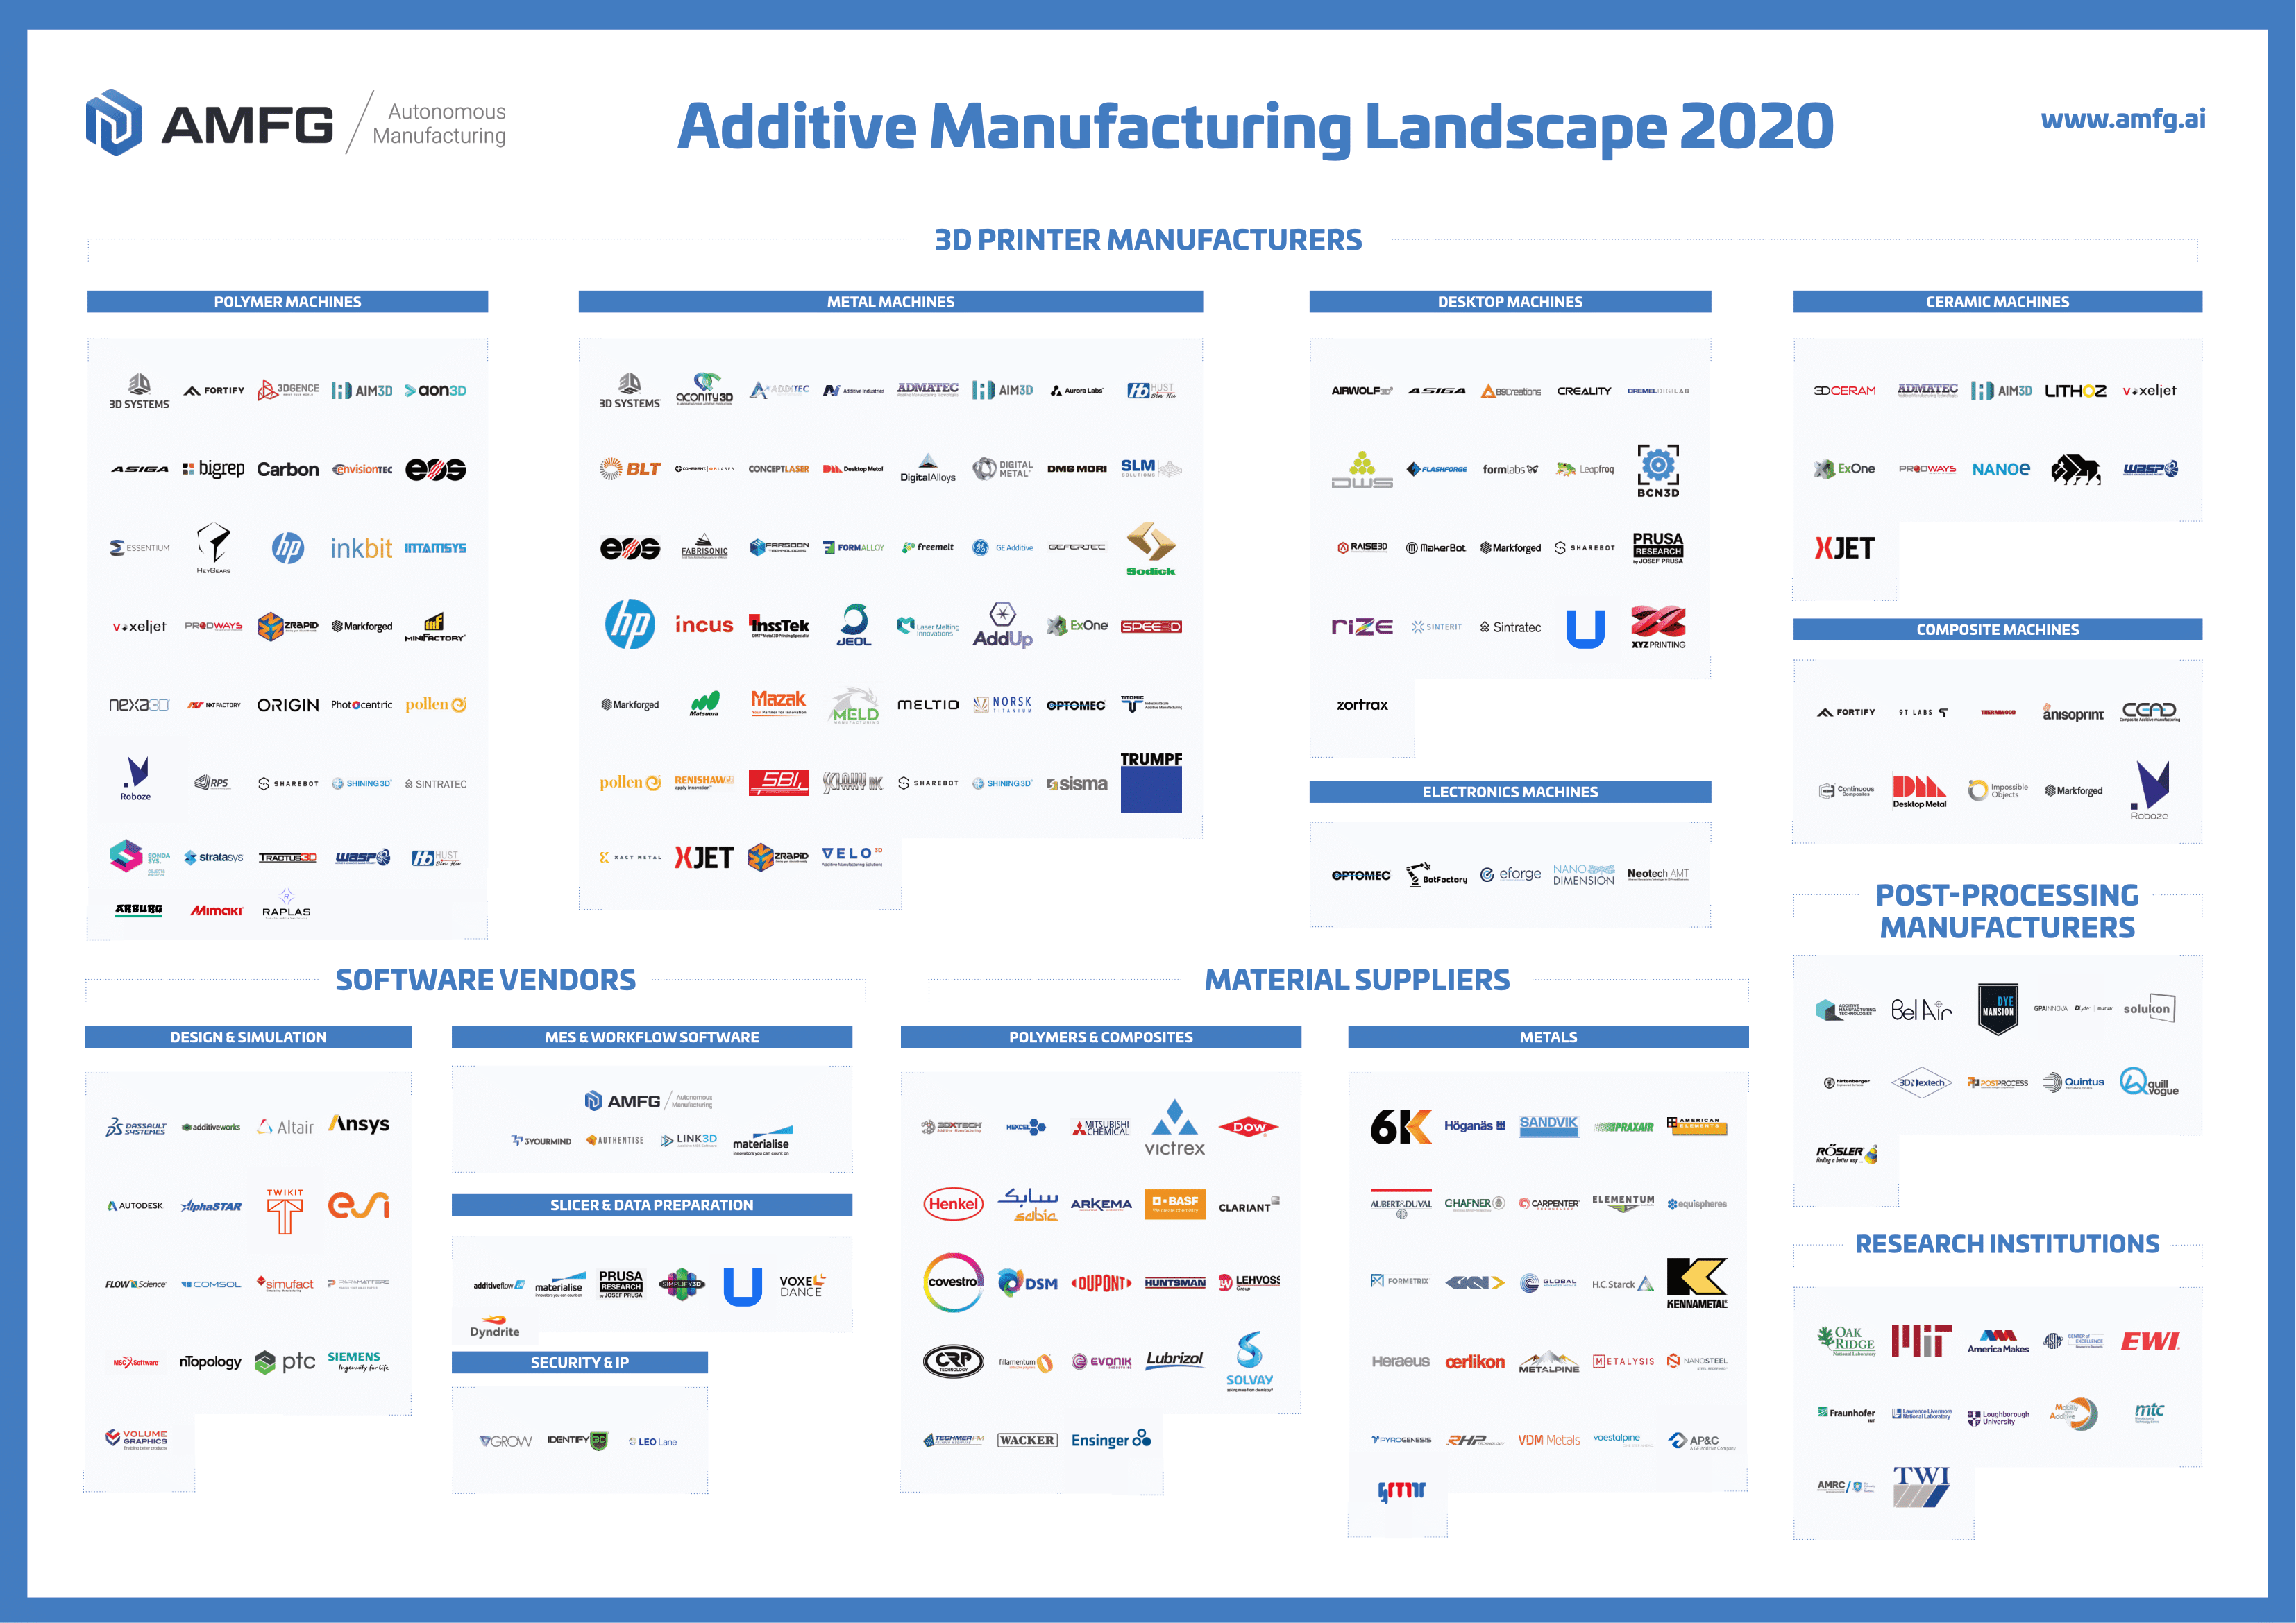 Additive Manufacturing Around the World: What is the State of 3D Printing Adoption in North America and Europe?